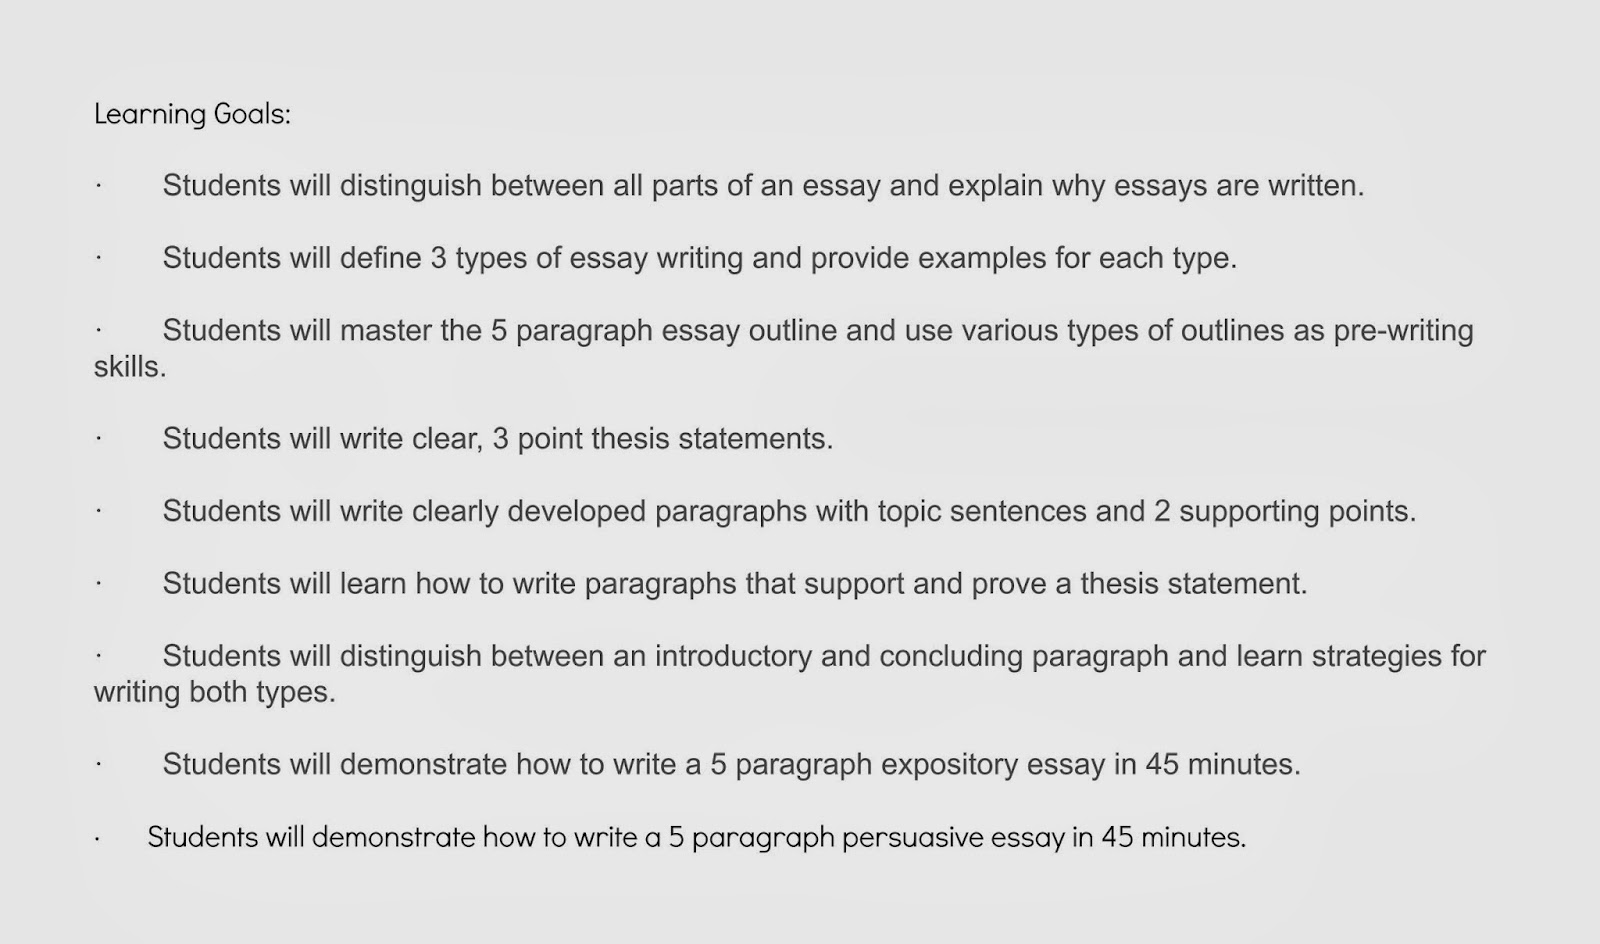 easy essays quick essay topics choosing an essay topic easy  easy essays com easy essays com easy essay oglasi easy essay adventures jude bridgeway academy easy